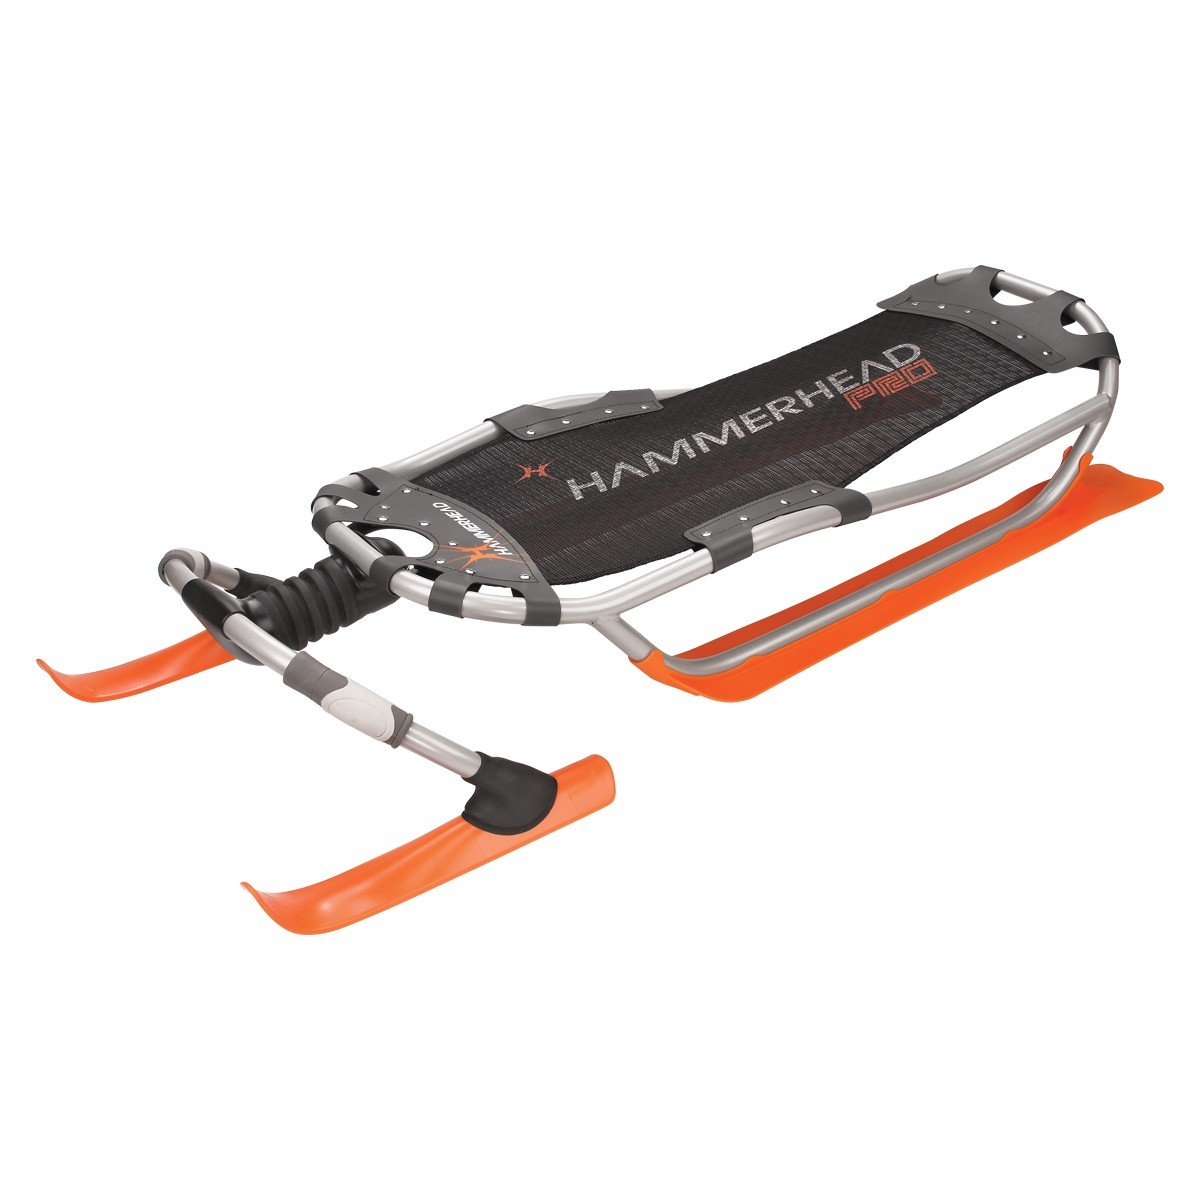 Yukon Charlies Hammerhead Pro XLD Sled, One Size, Orange by Yukon Charlie's